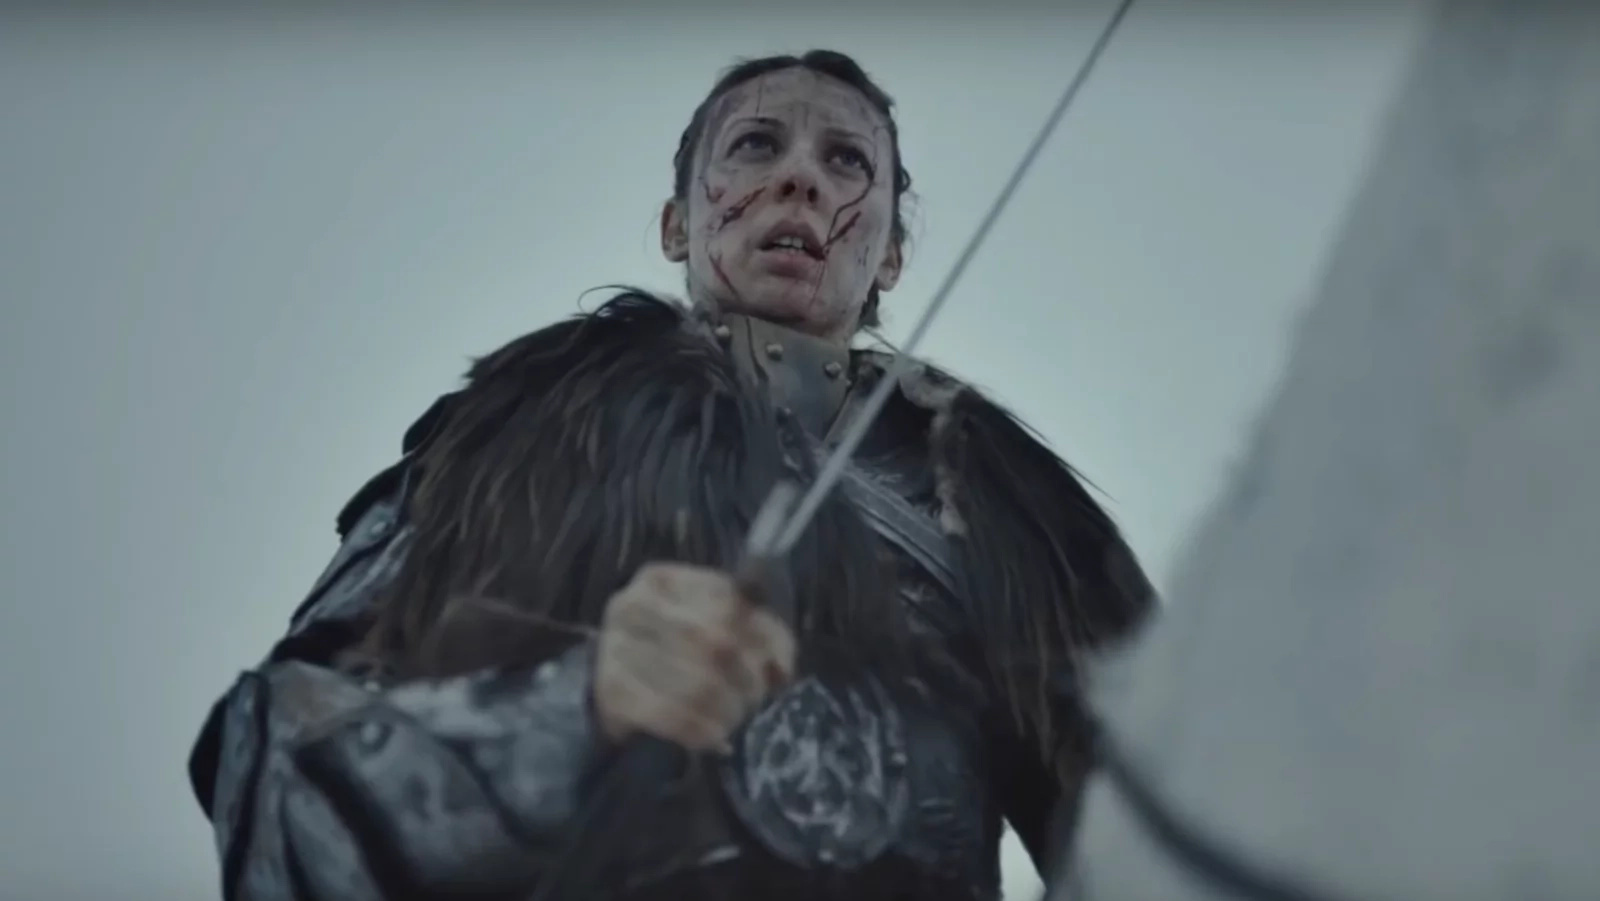 WATCH: Real blood was used in this maxi pad commercial